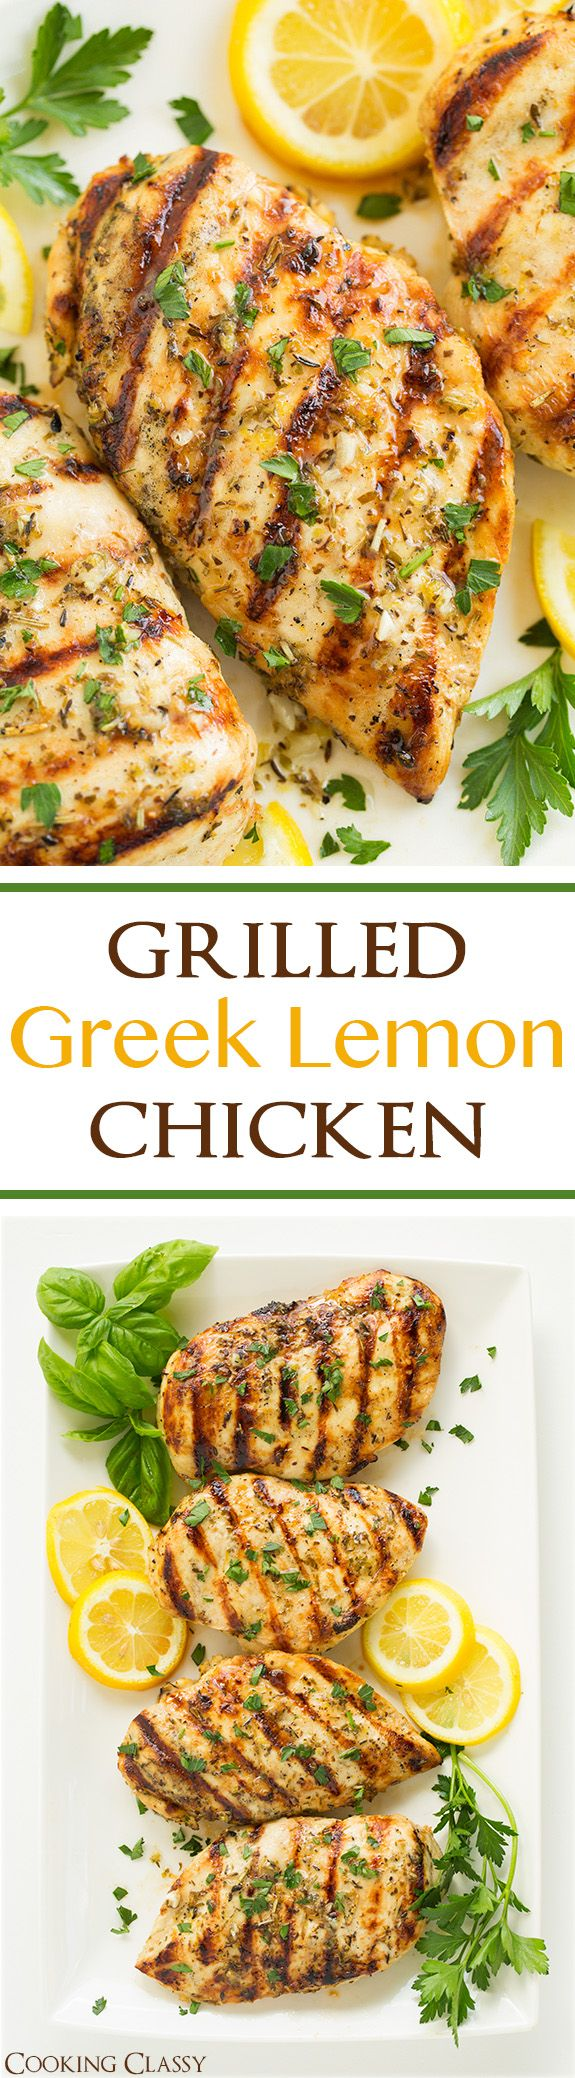 "Grilled Greek Lemon Chicken - this chicken is so easy to prepare and it's deliciously flavorful! A go to dinner recipe! Marinated and grilled to perfection! ""Repinned by Keva xo""."